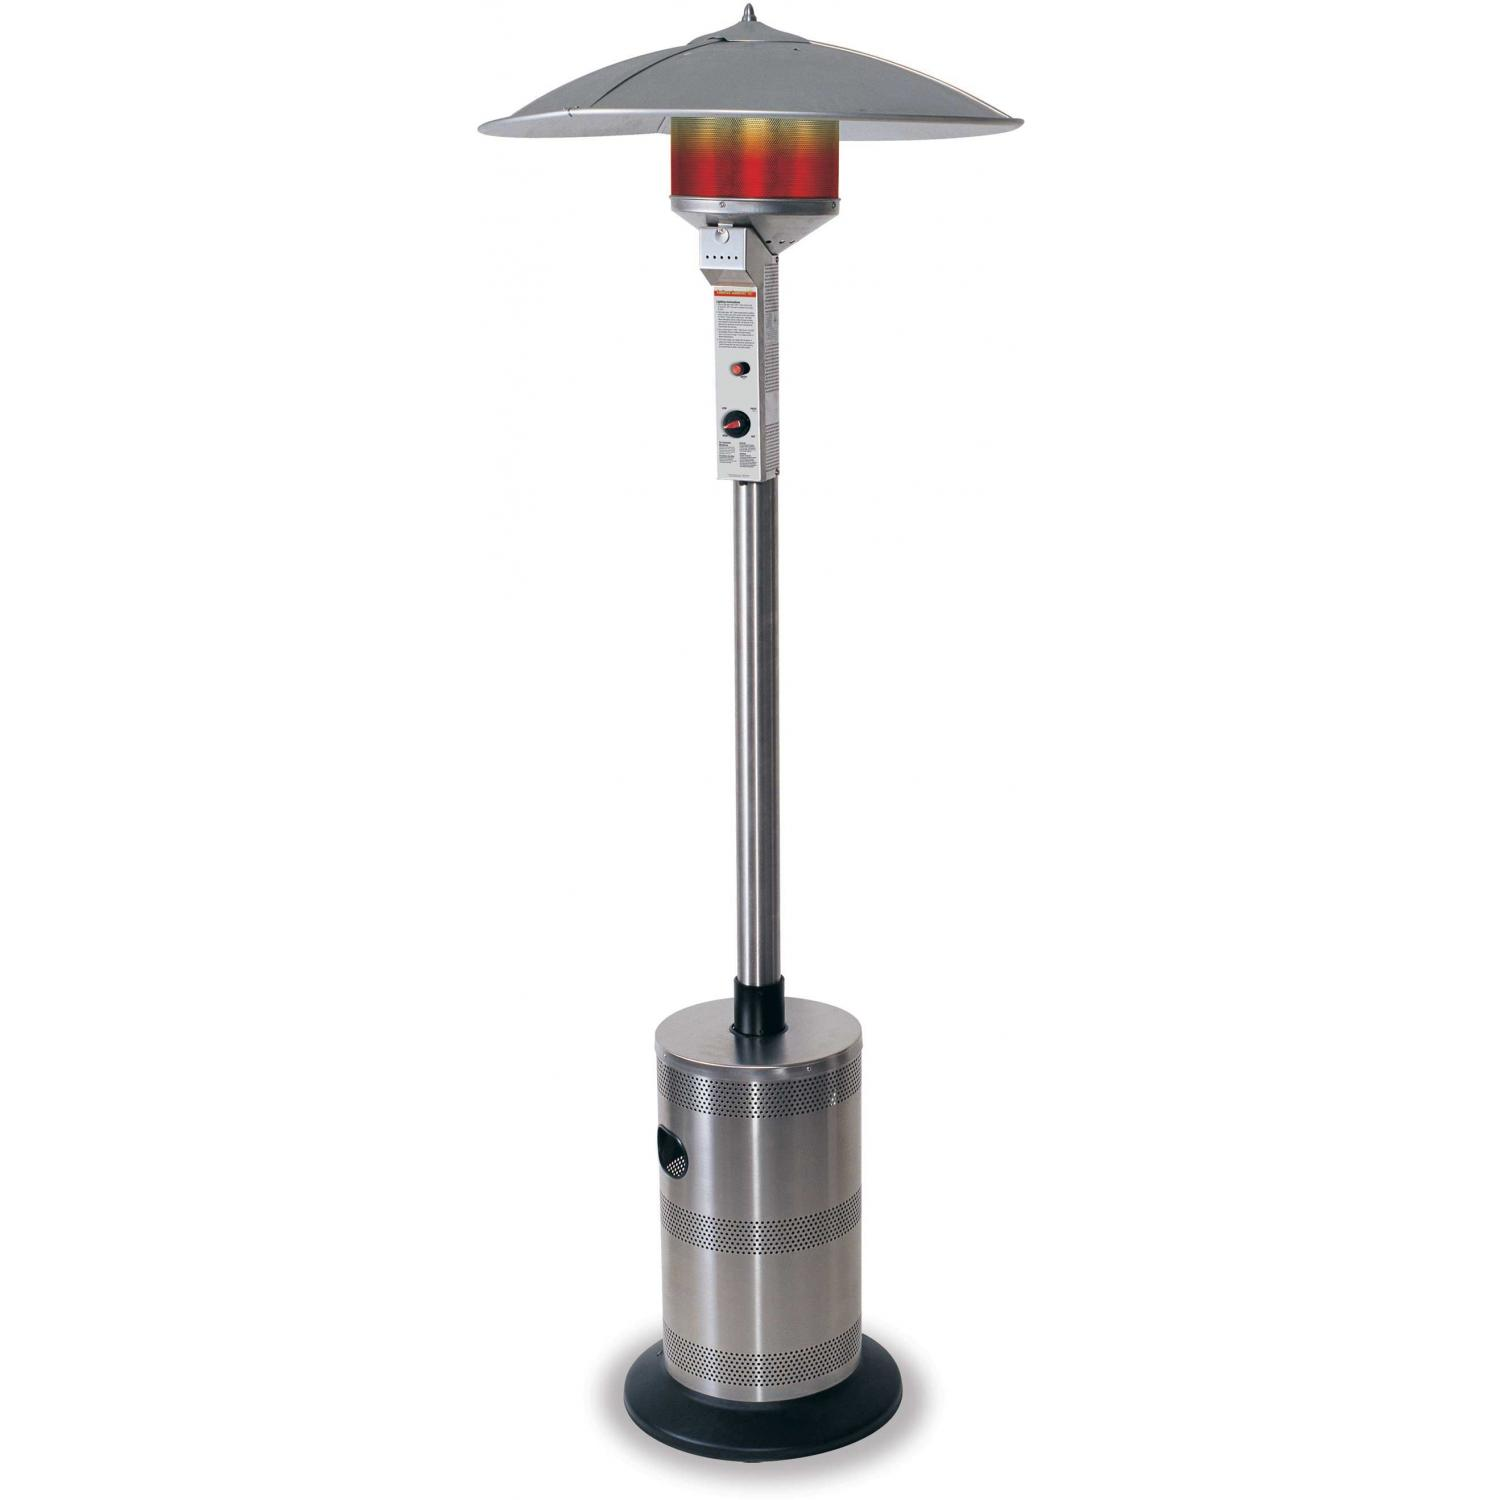 Endless Summer Patio Heaters Stainless Steel Deluxe Residential Propane Patio Heater